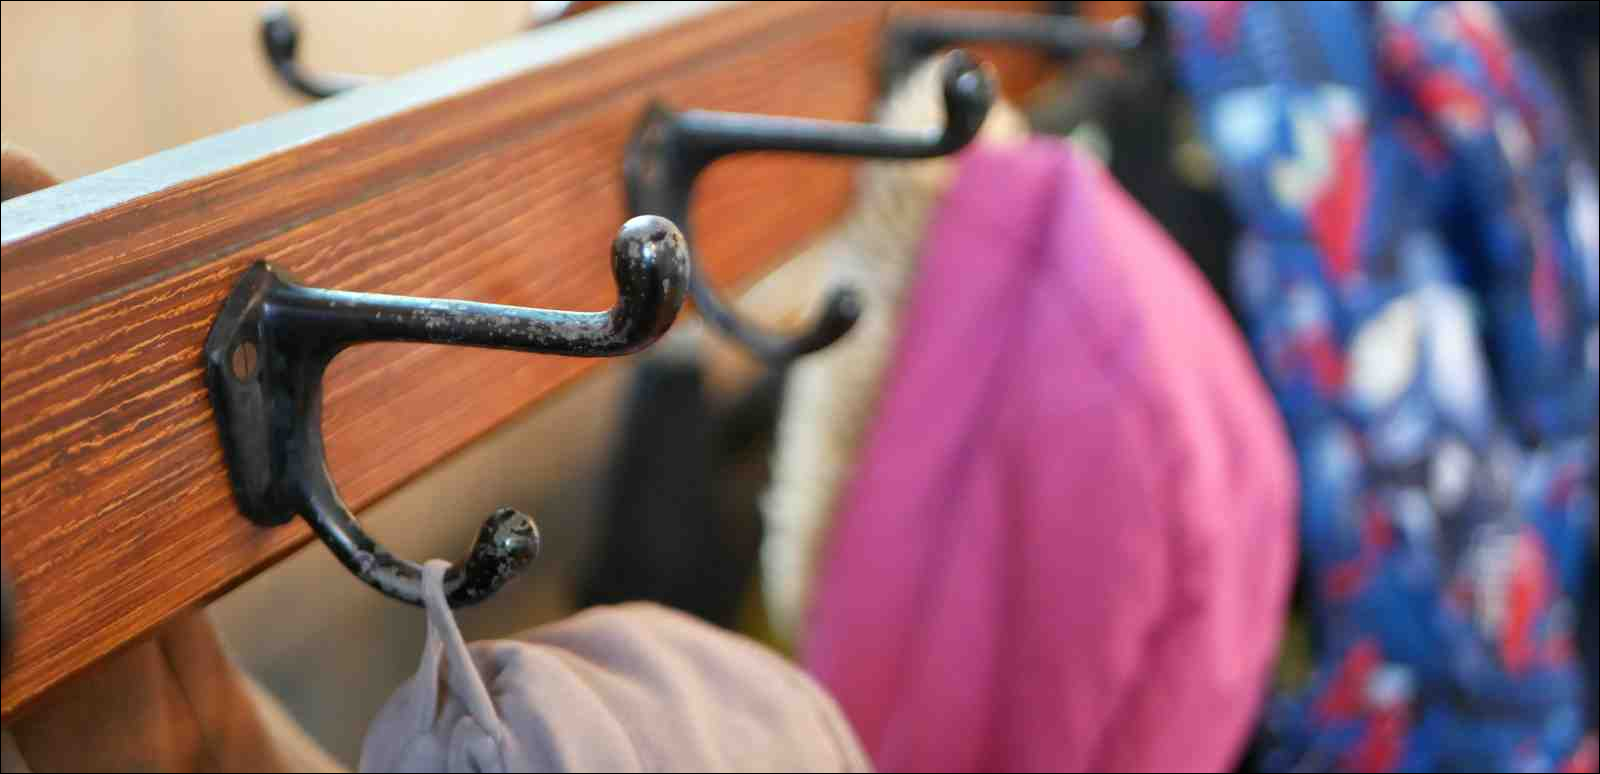 Coat rack with several hooks and coats hanging from them